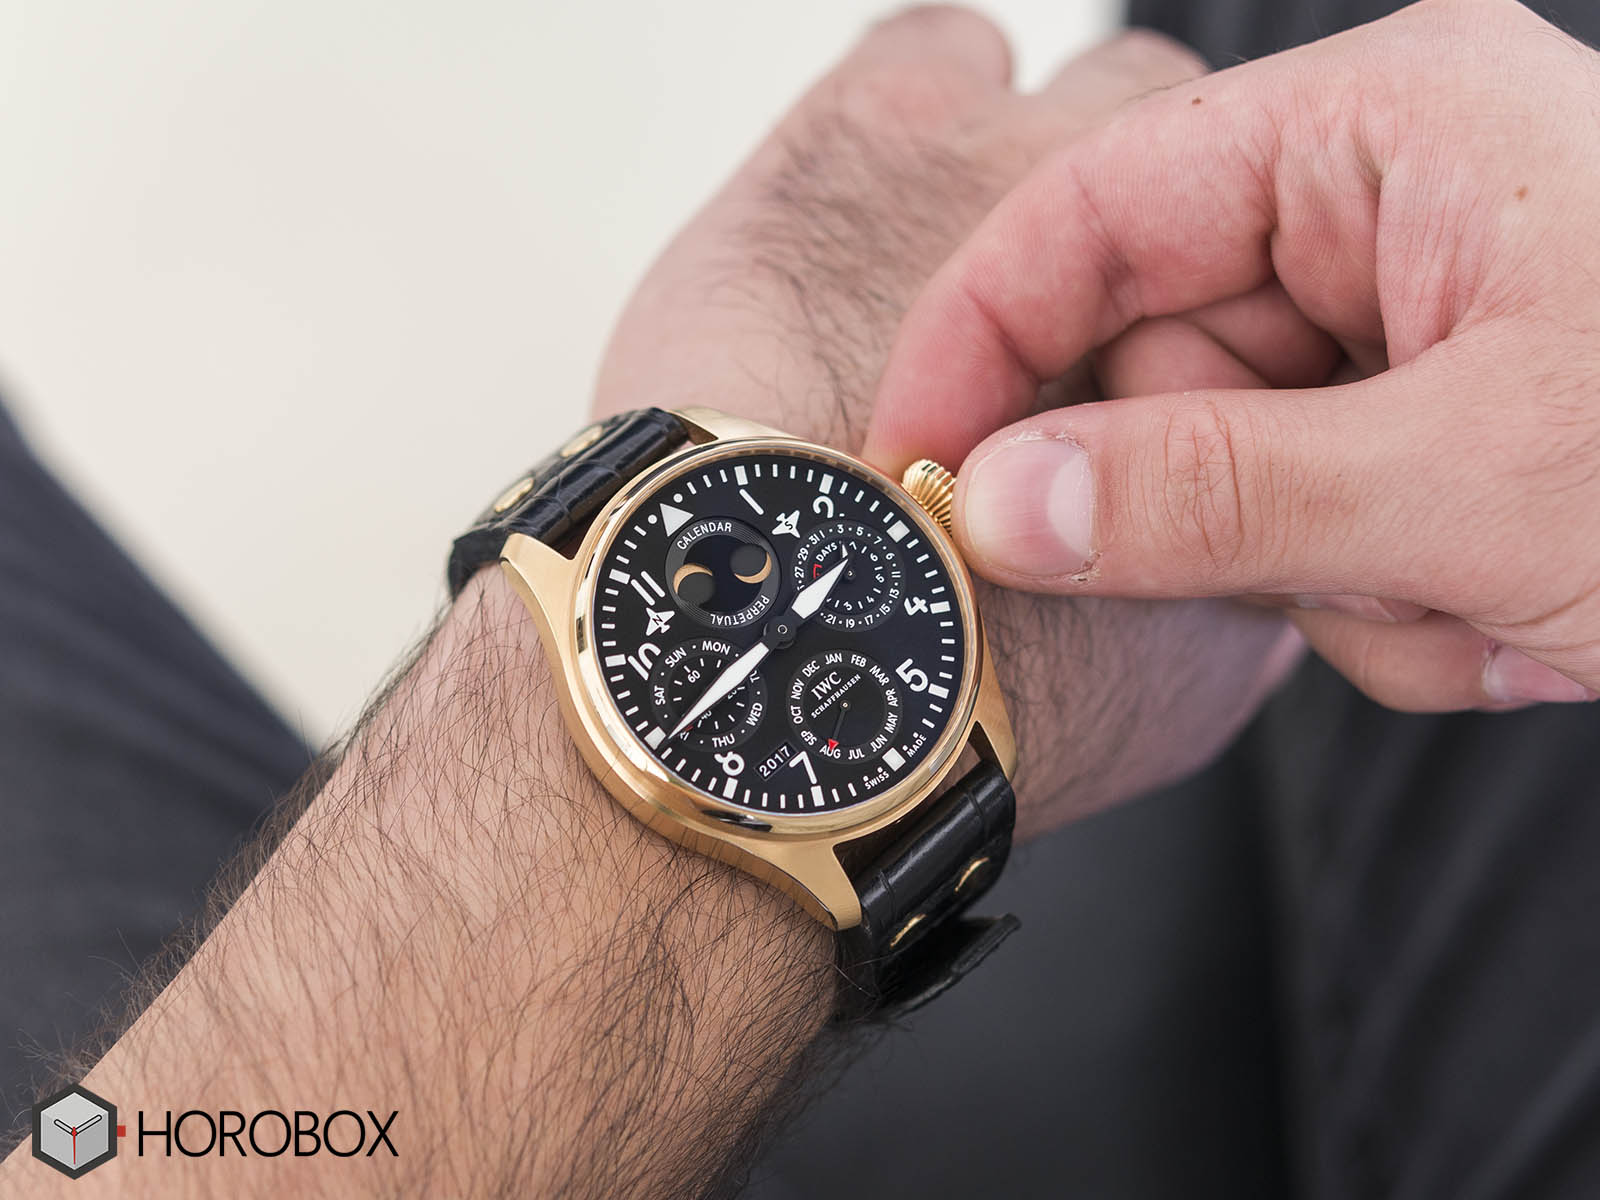 iwc-big-pilot-perpetual-calendar-18k-red-gold-limited-edition-iw502628-10.jpg